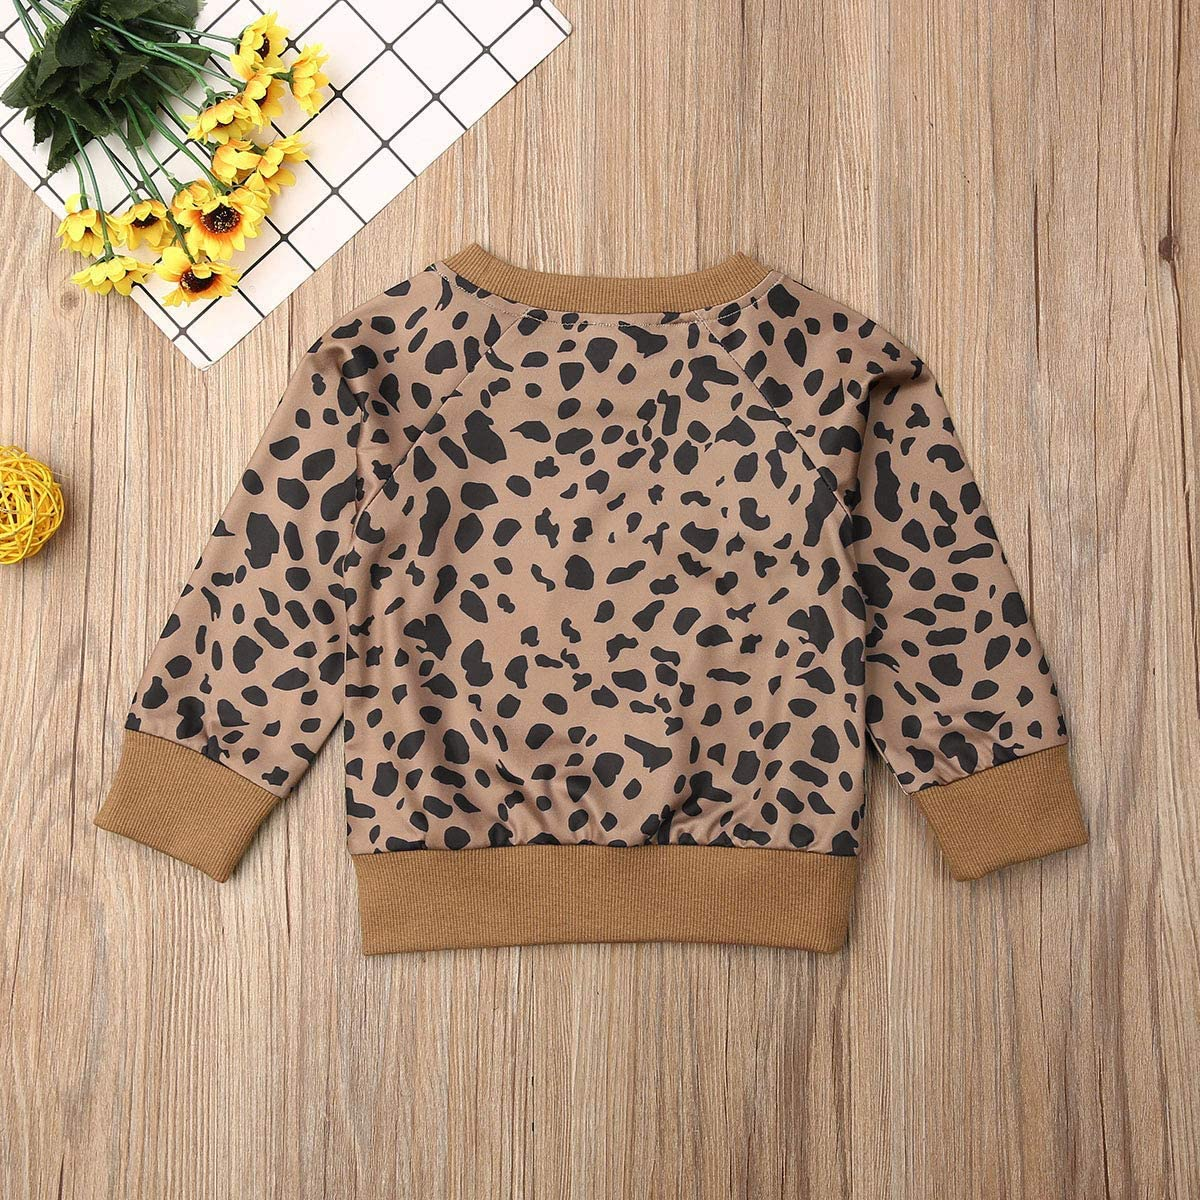 BOEBNOZCV Toddler Baby Girls Boy Leopard Print Sweater Long Sleeve Pullover Tops Blouse Sweatshirt Autumn Clothes